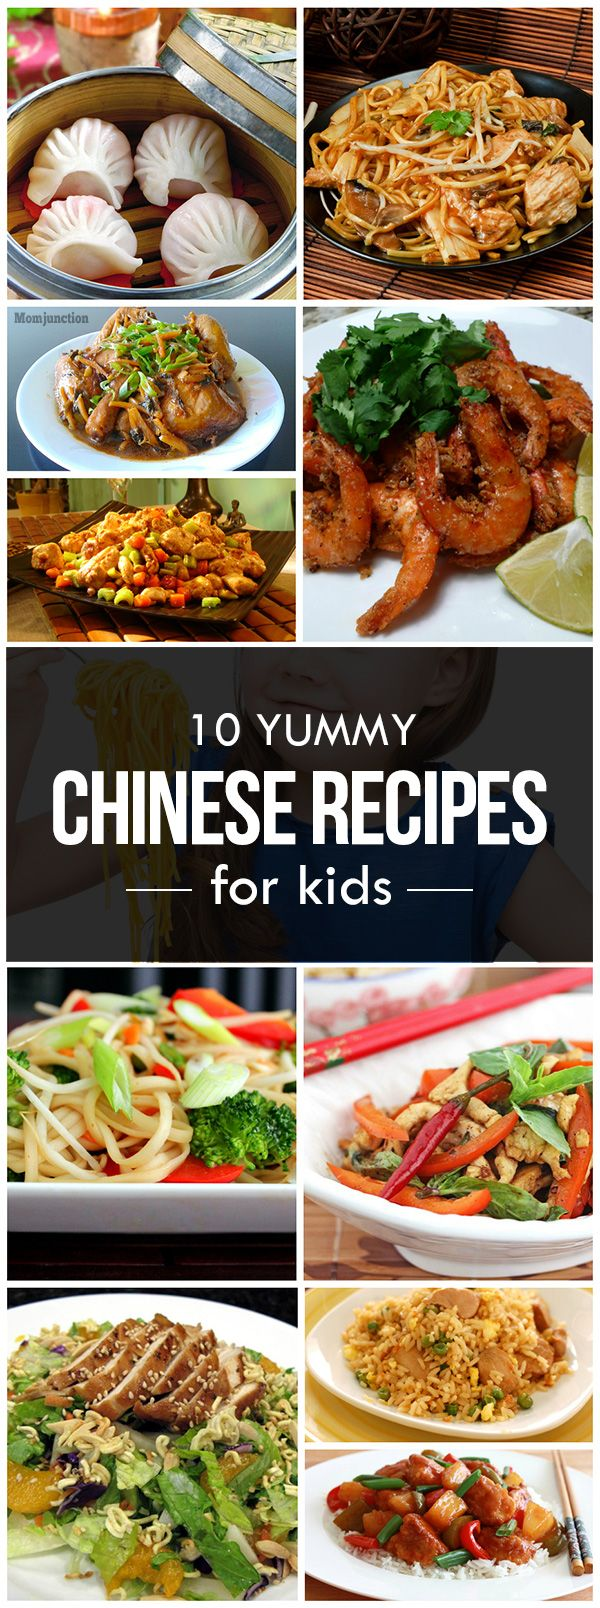 Easy a ruban recipes for kids